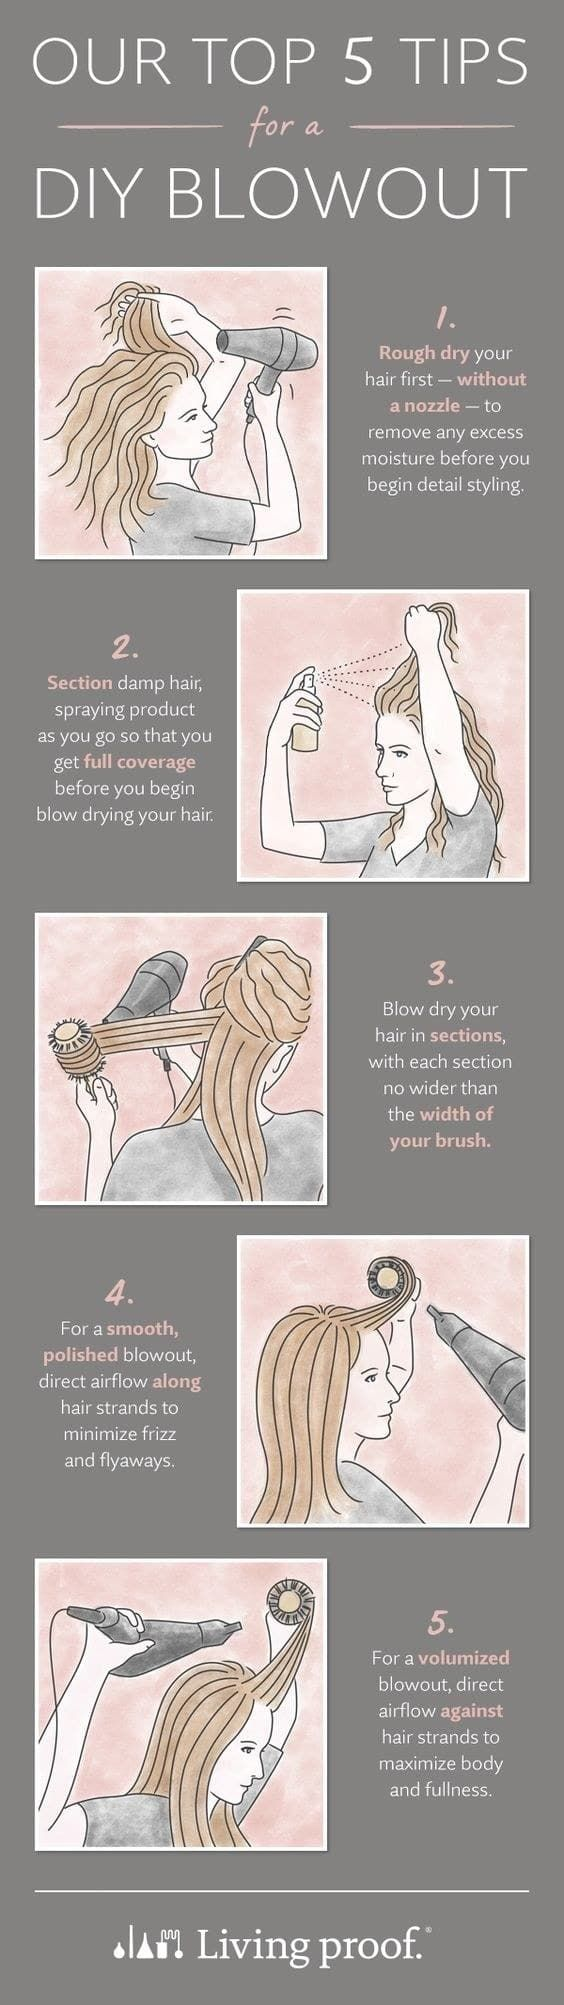 Set your blow dryer at a lower speed setting to lock in the style. Blast your hair with the cold air for shine. Go to Living Proof for more tips like this one.